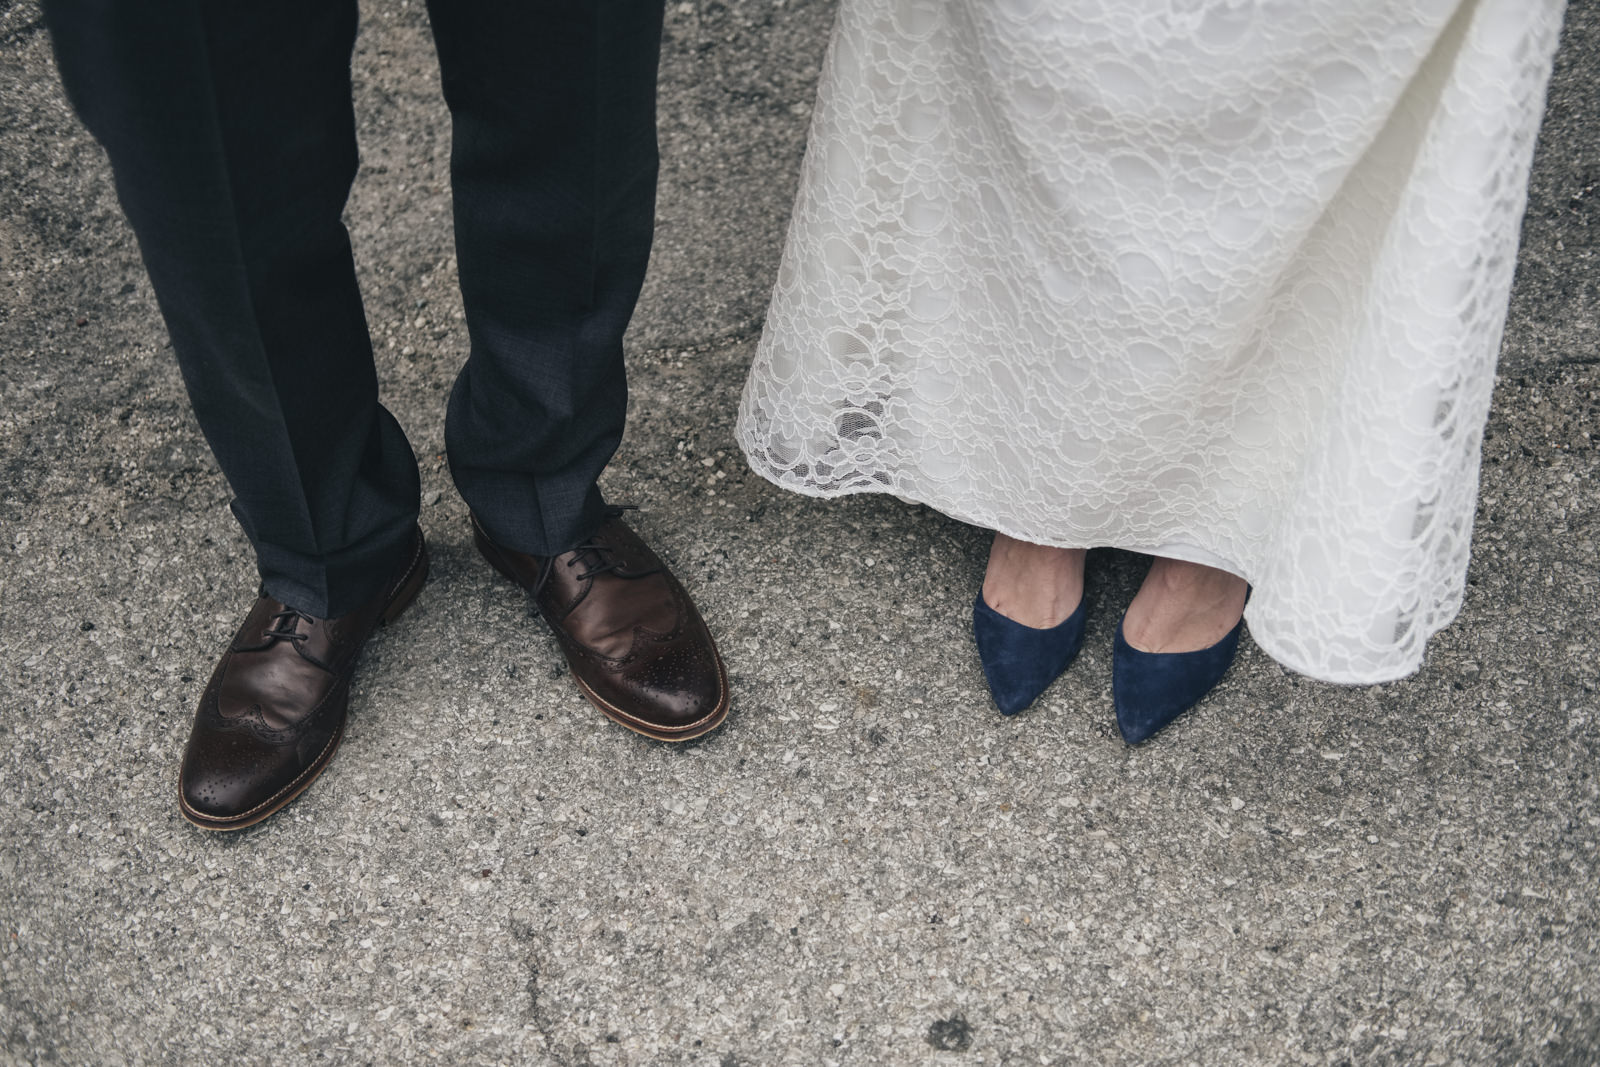 Wedding photography in downtown Toledo. Detail shot of the bride and groom's shoes.